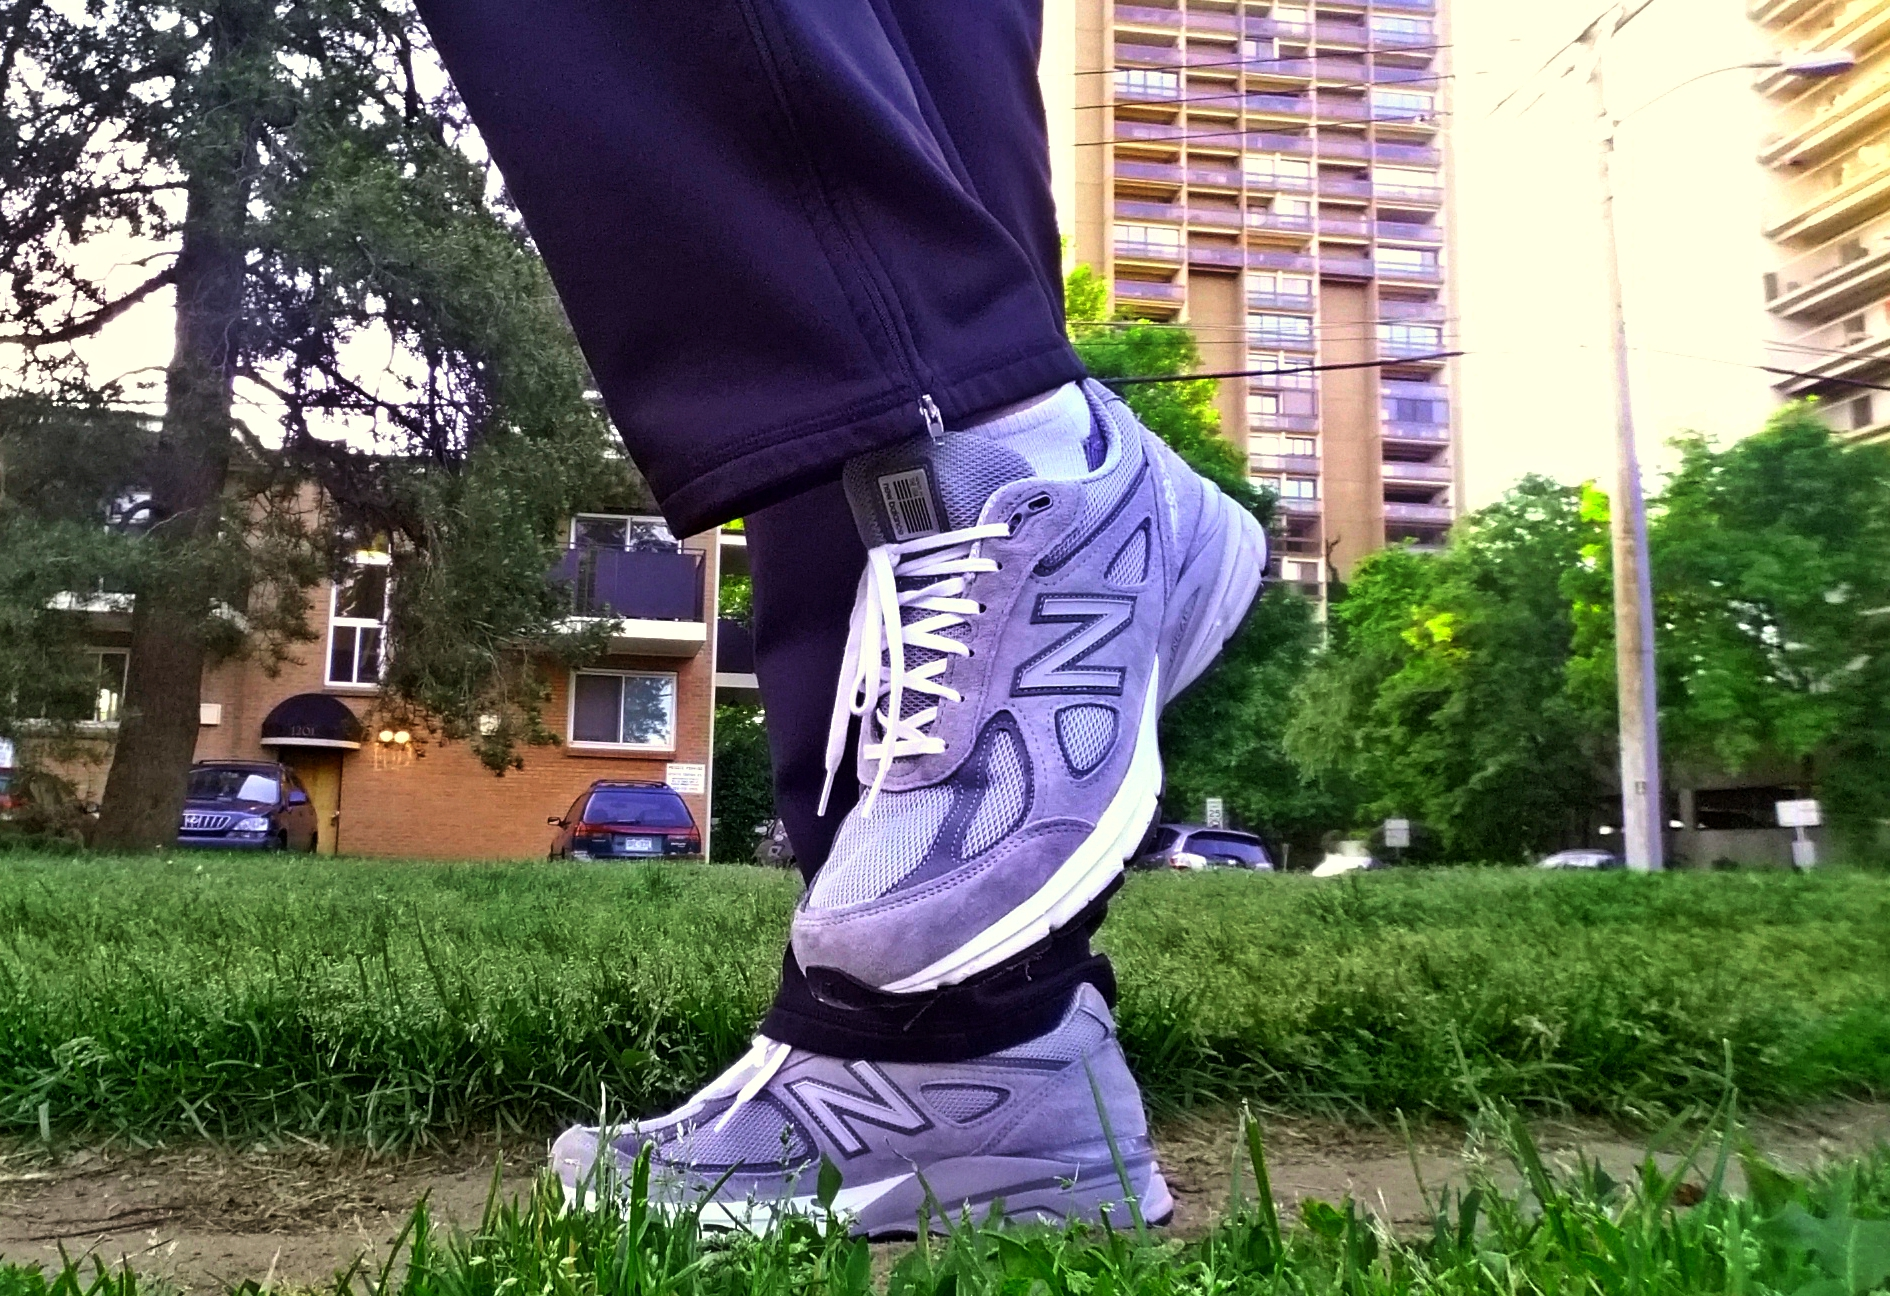 low priced 7e4a6 28ee1 New Balance 990v4 - Fitness Review | Busted Wallet